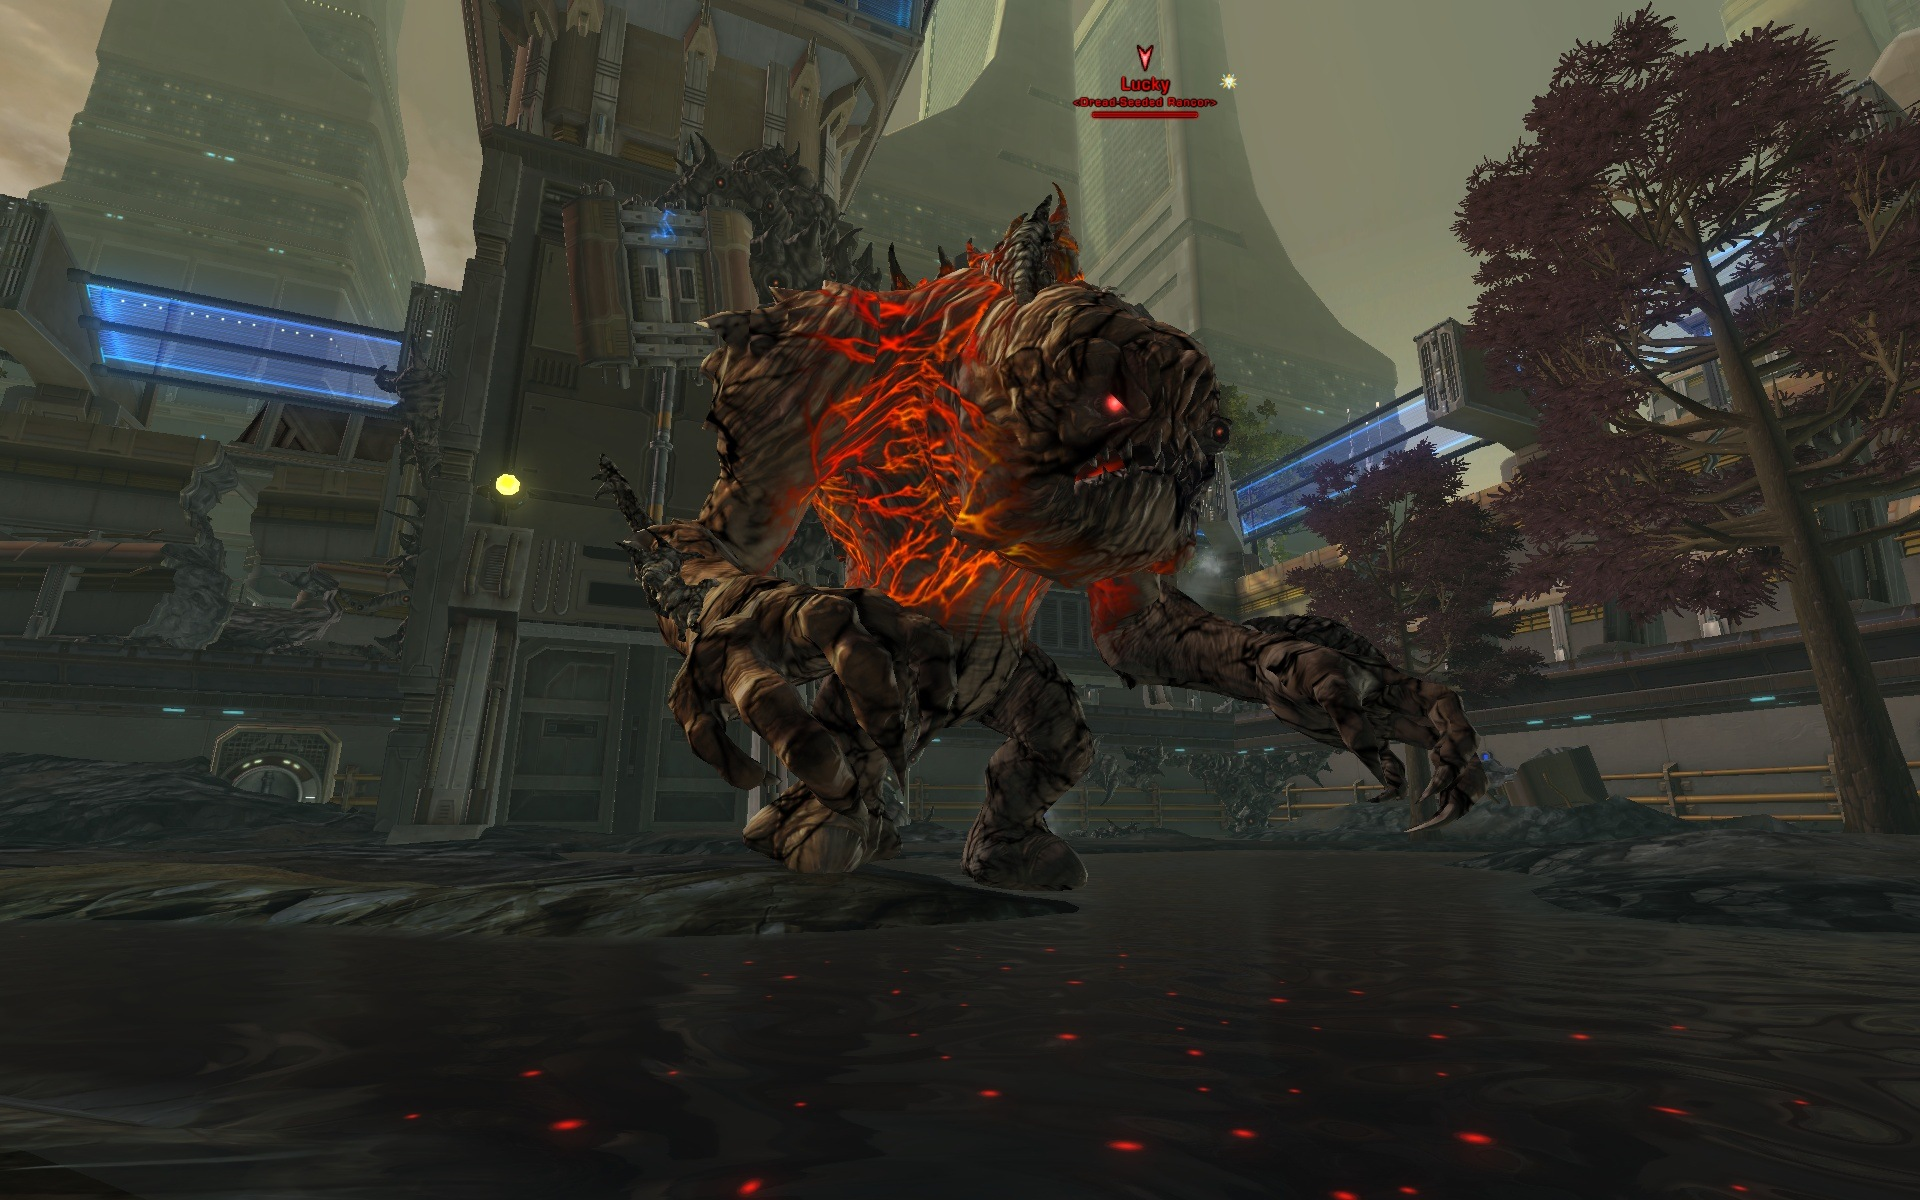 New world boss spotted on Corellia in 2.0